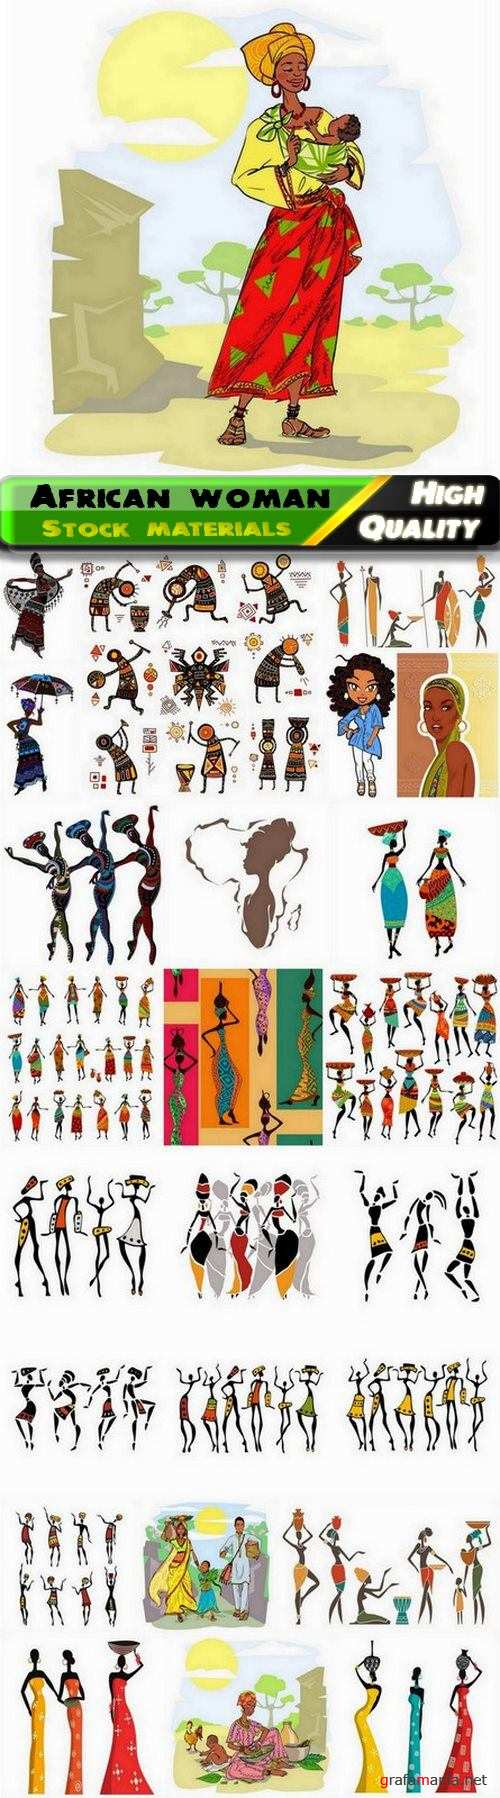 African woman silhouette and afro american girl illustration - 25 Eps